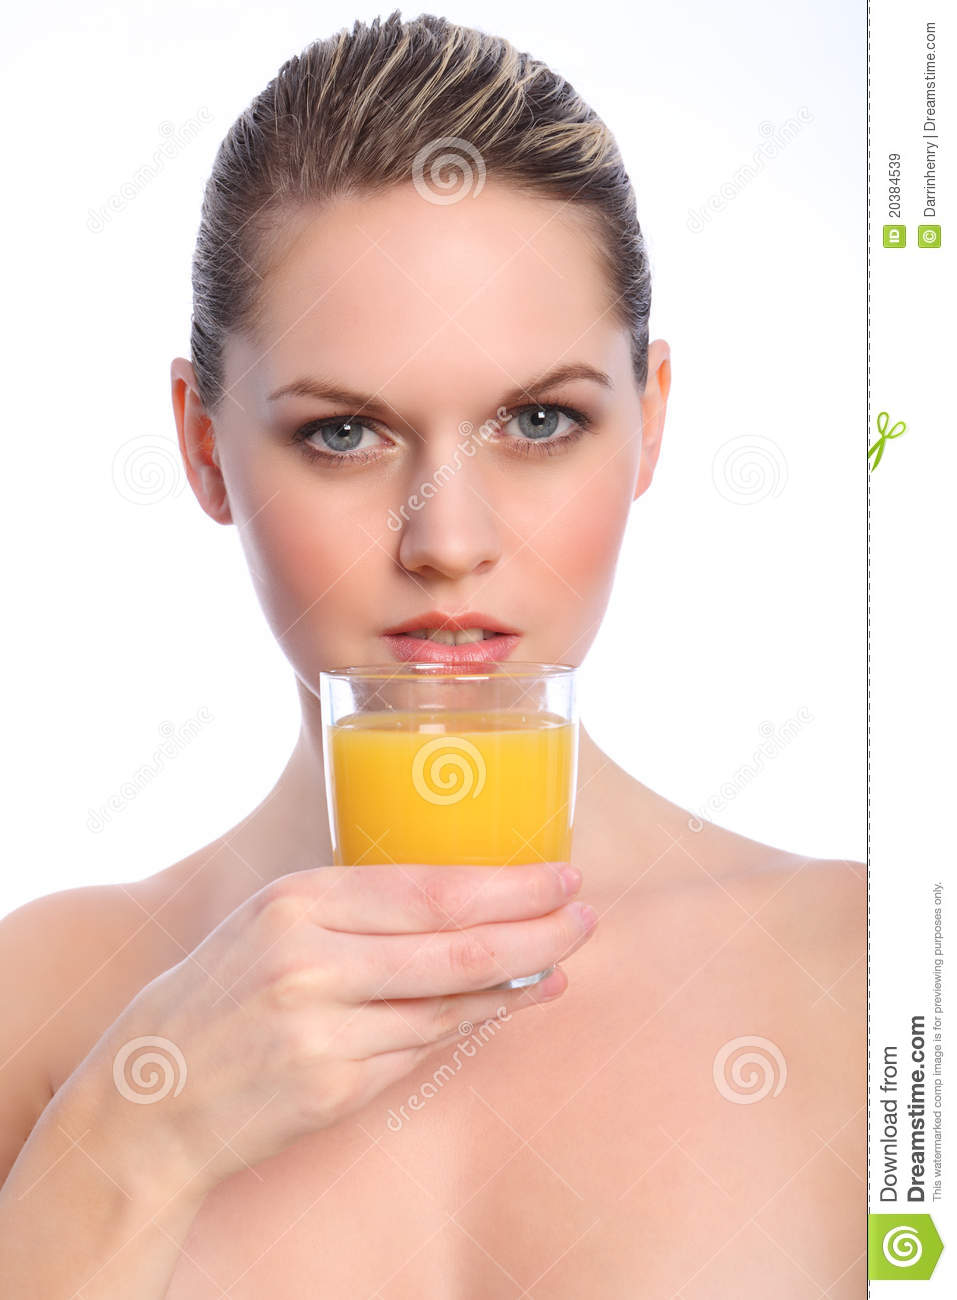 Belle Femme Boit Jus Fruit Orange Sain